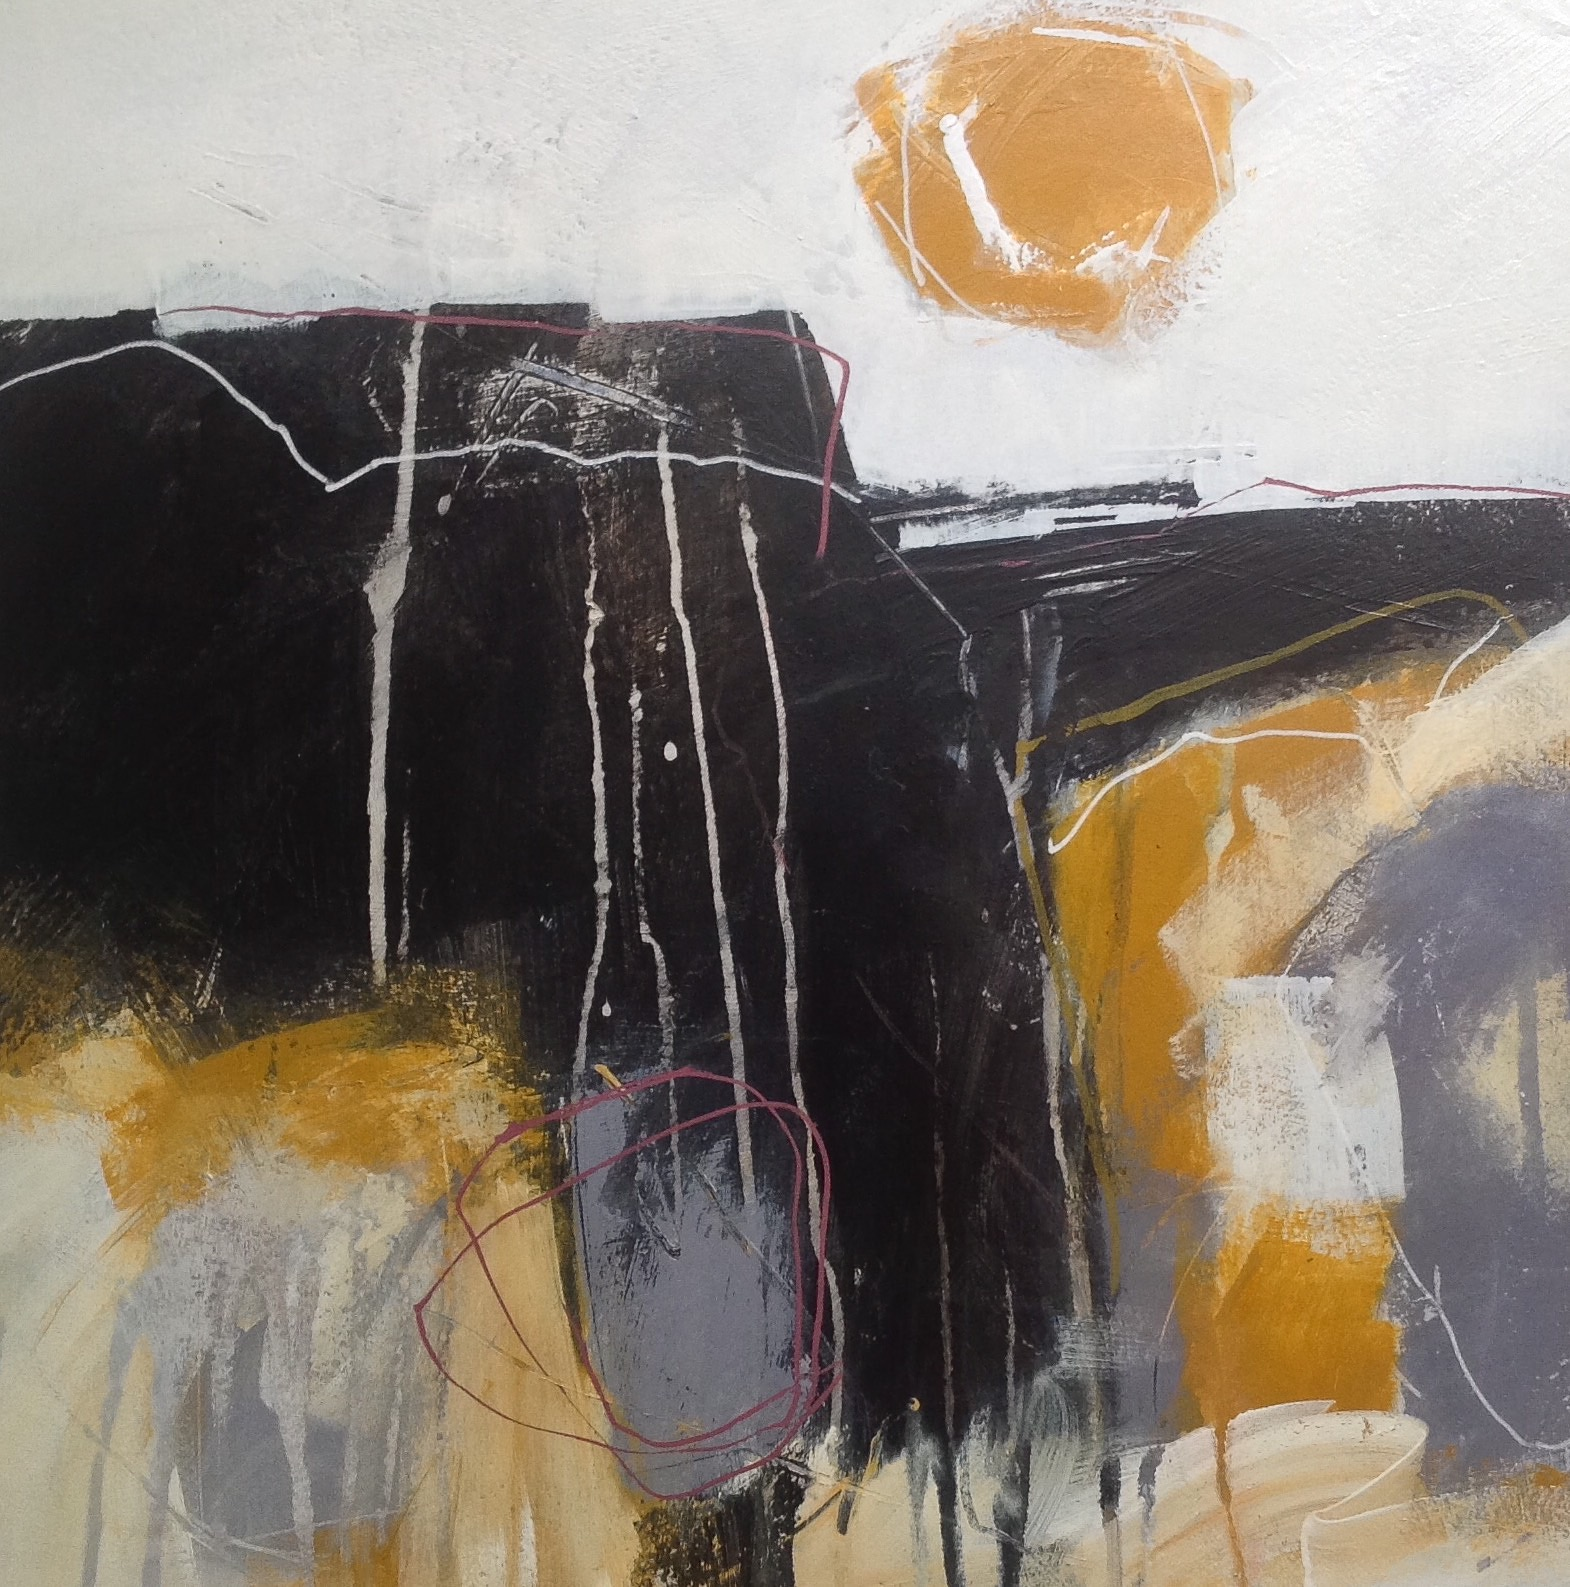 Hot summer sun. Abstract landscape in mixed media on watercolour board by contemporary artist Mari French.